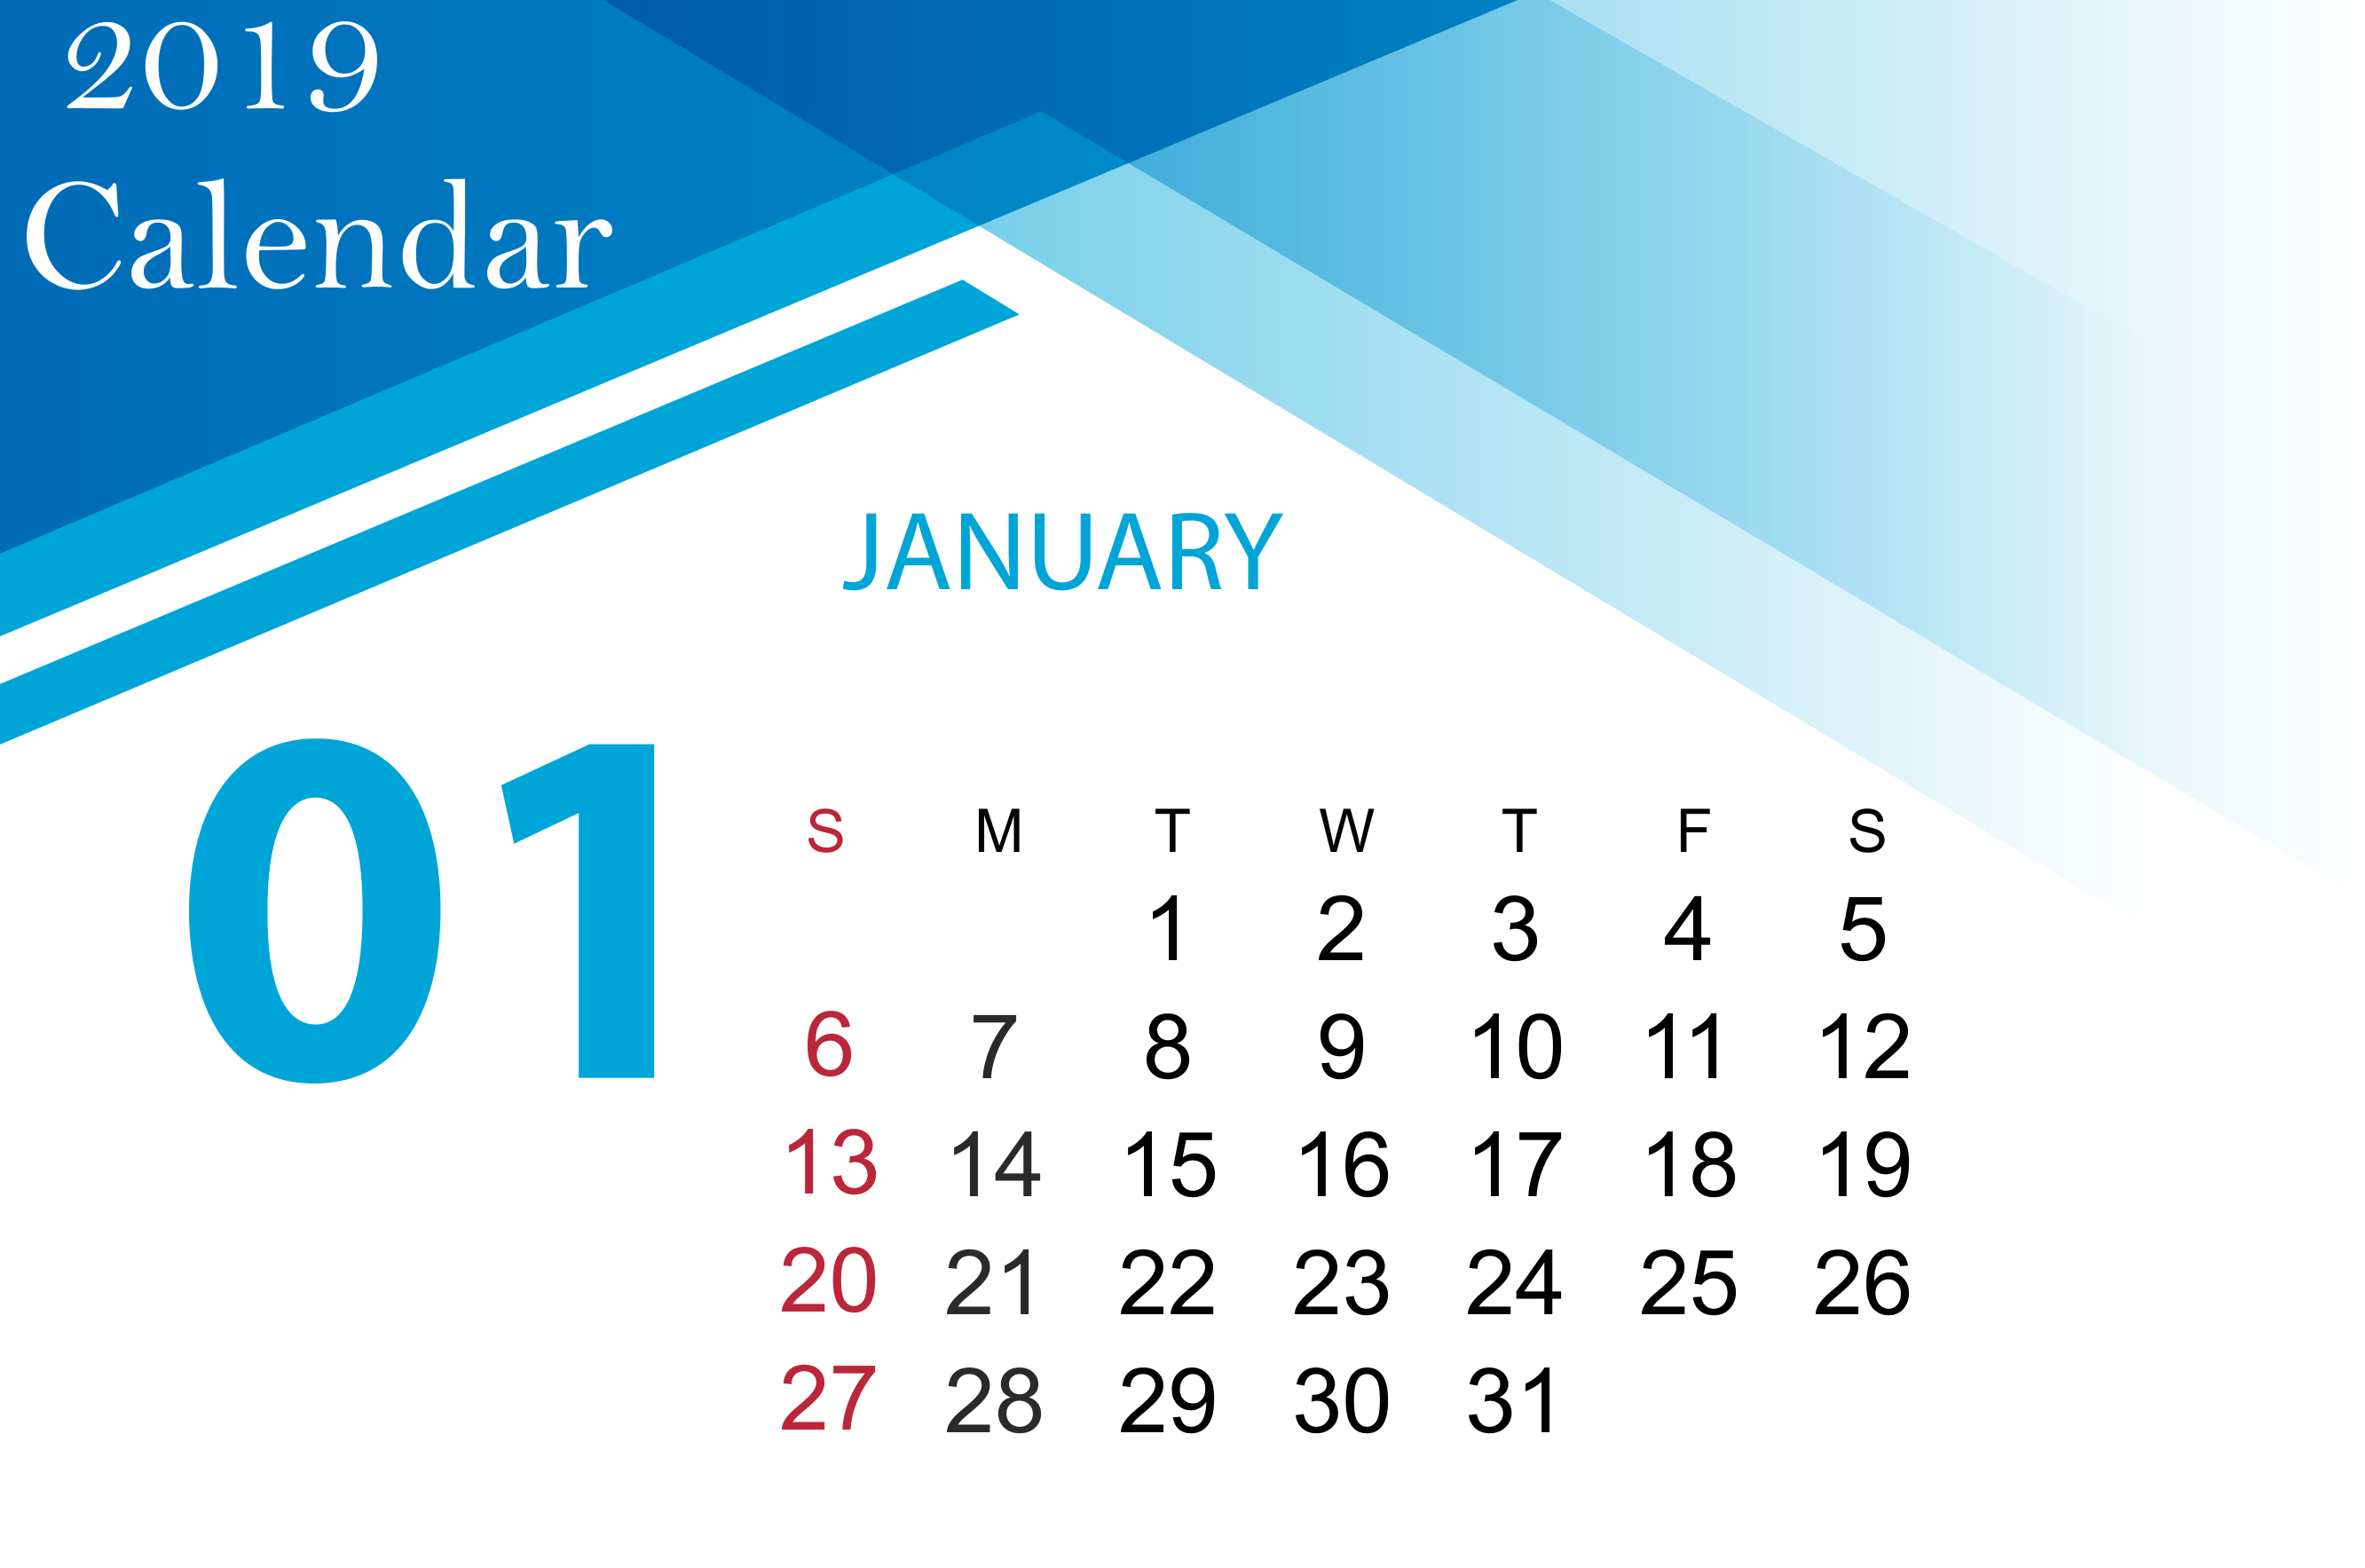 January 2019 Printable Calendar A4 11 8 5 Editable Page With Notes Excel